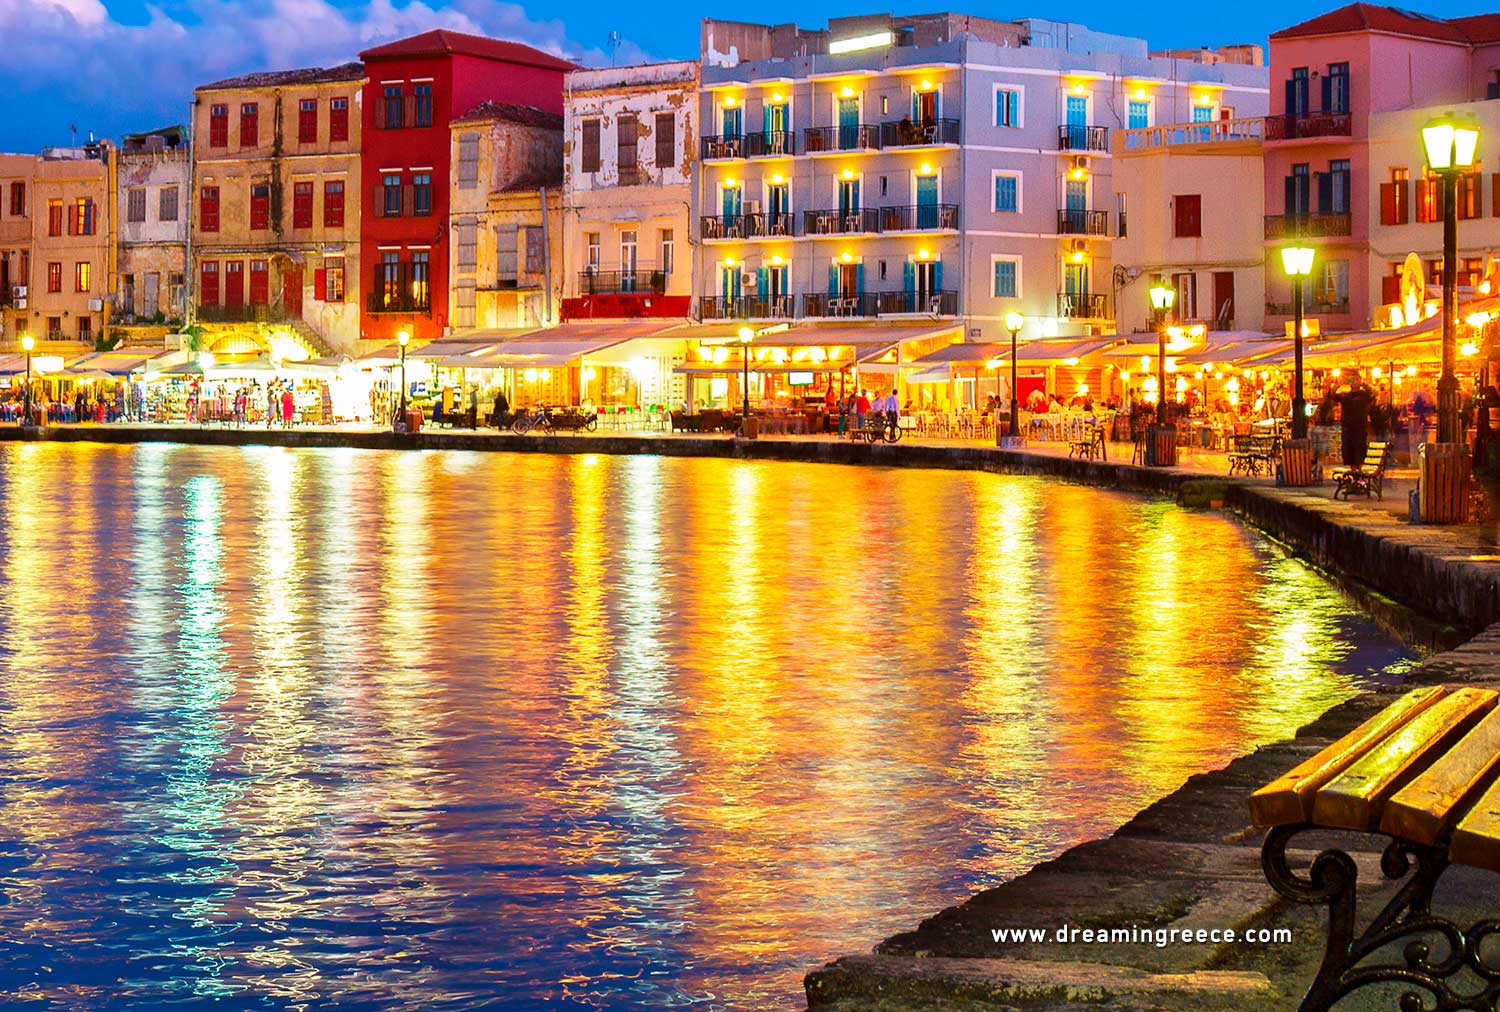 Holidays in Chania Crete island Greece. Vacations Greek islands.